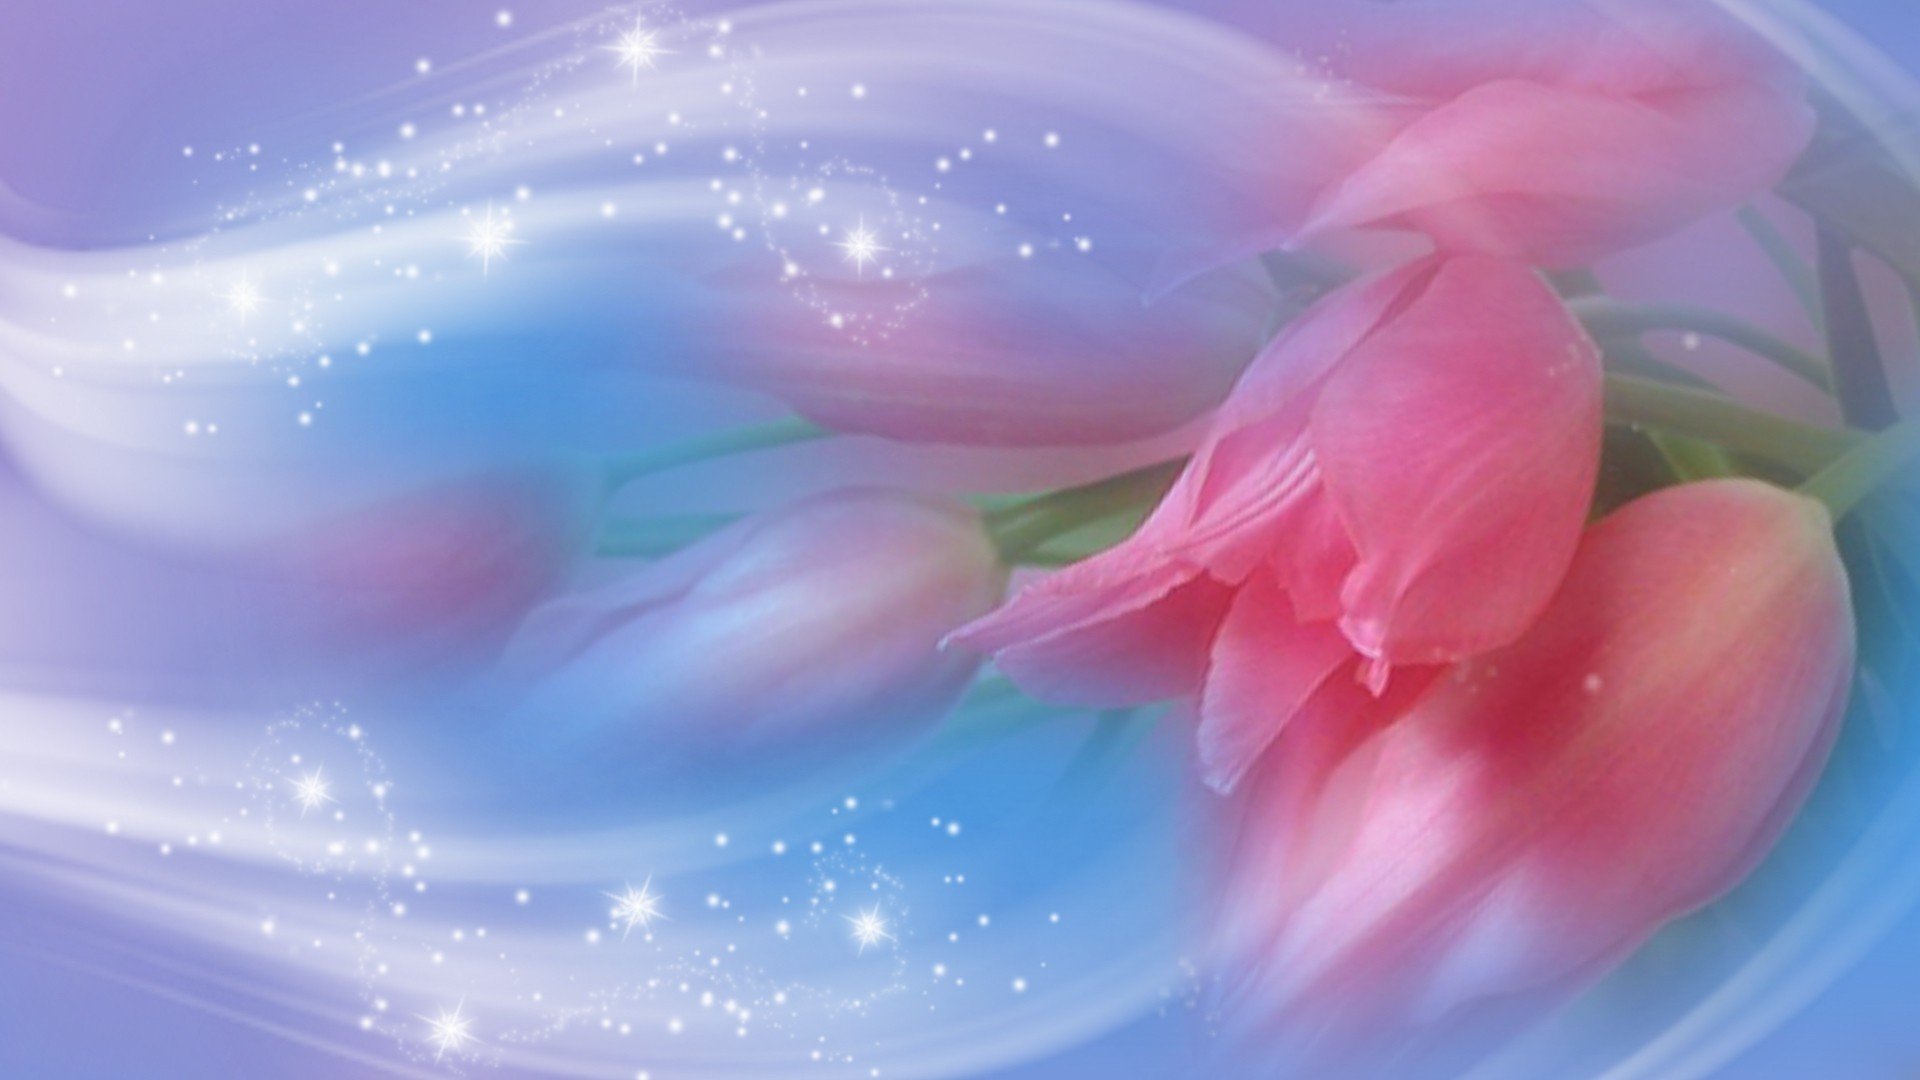 Blue And Pink Ombre Wallpaper 60 Images